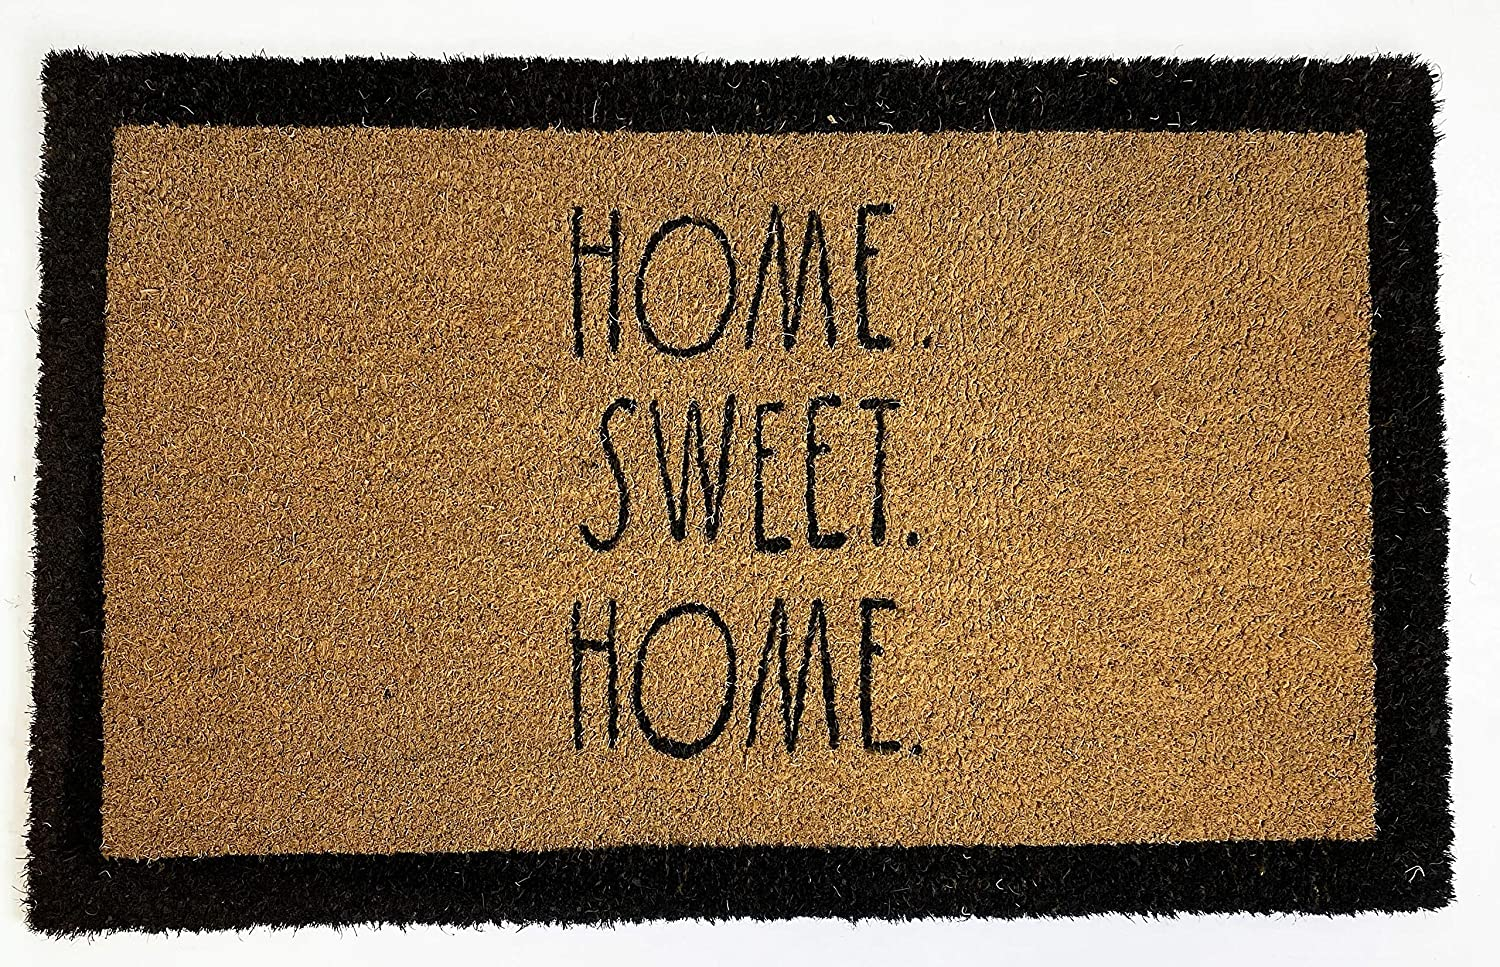 "Rae Dunn Home Sweet Home Door Mat - 24"" x 36"" Welcome Mat - Coco Coir Coconut Fiber and Waterproof Rubber Back - Cute Decor Indoor and Outdoor Rug for Front Porch, Entrance, Entryway, Patio"